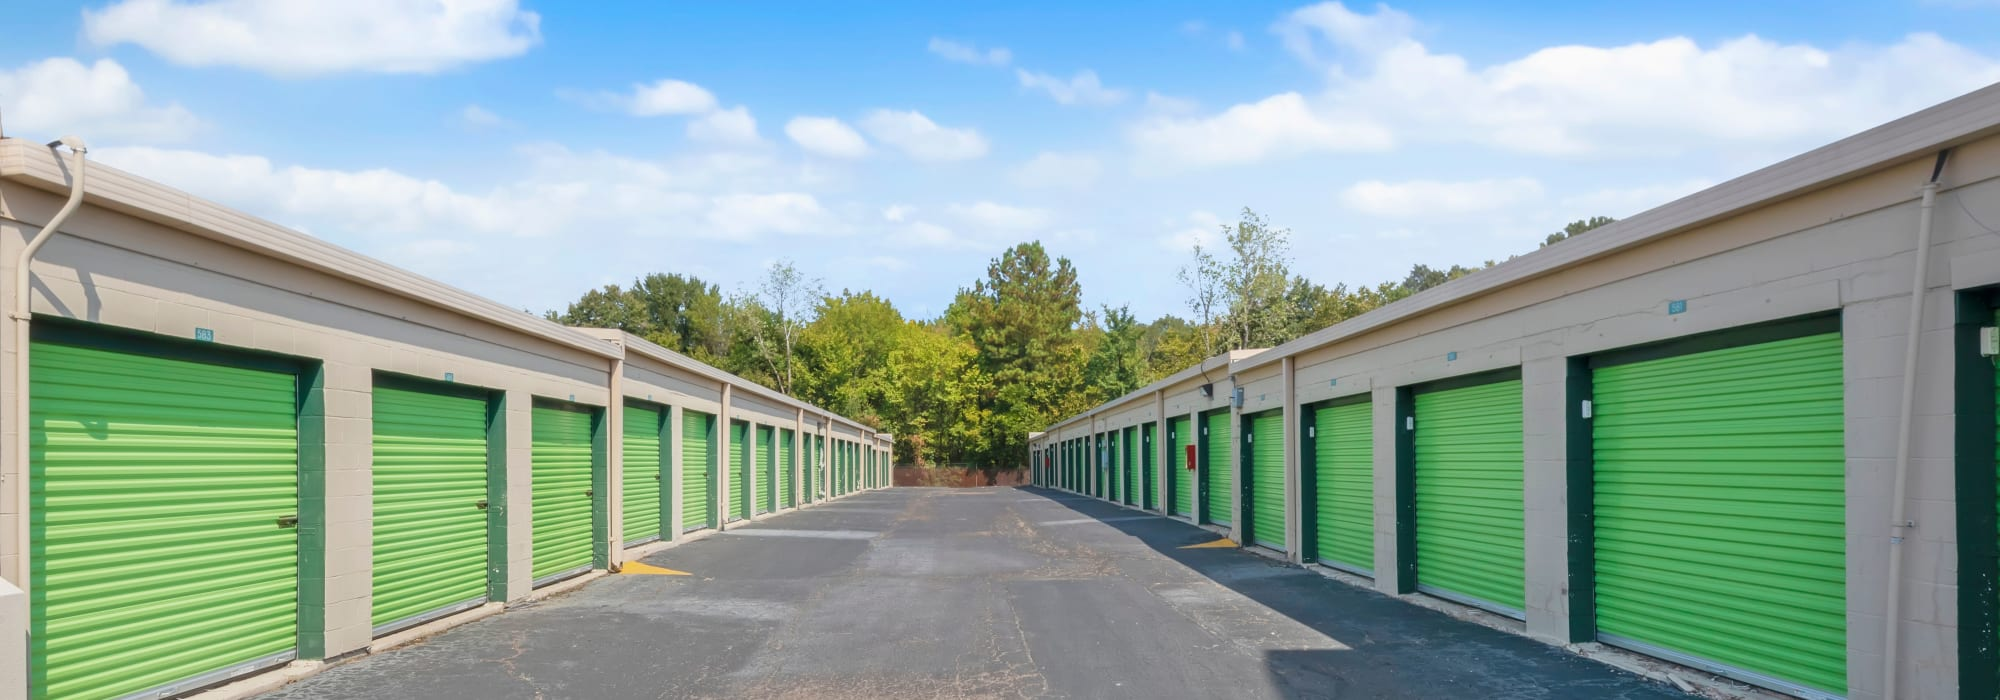 Reviews for Citizen Storage in Memphis, Tennessee